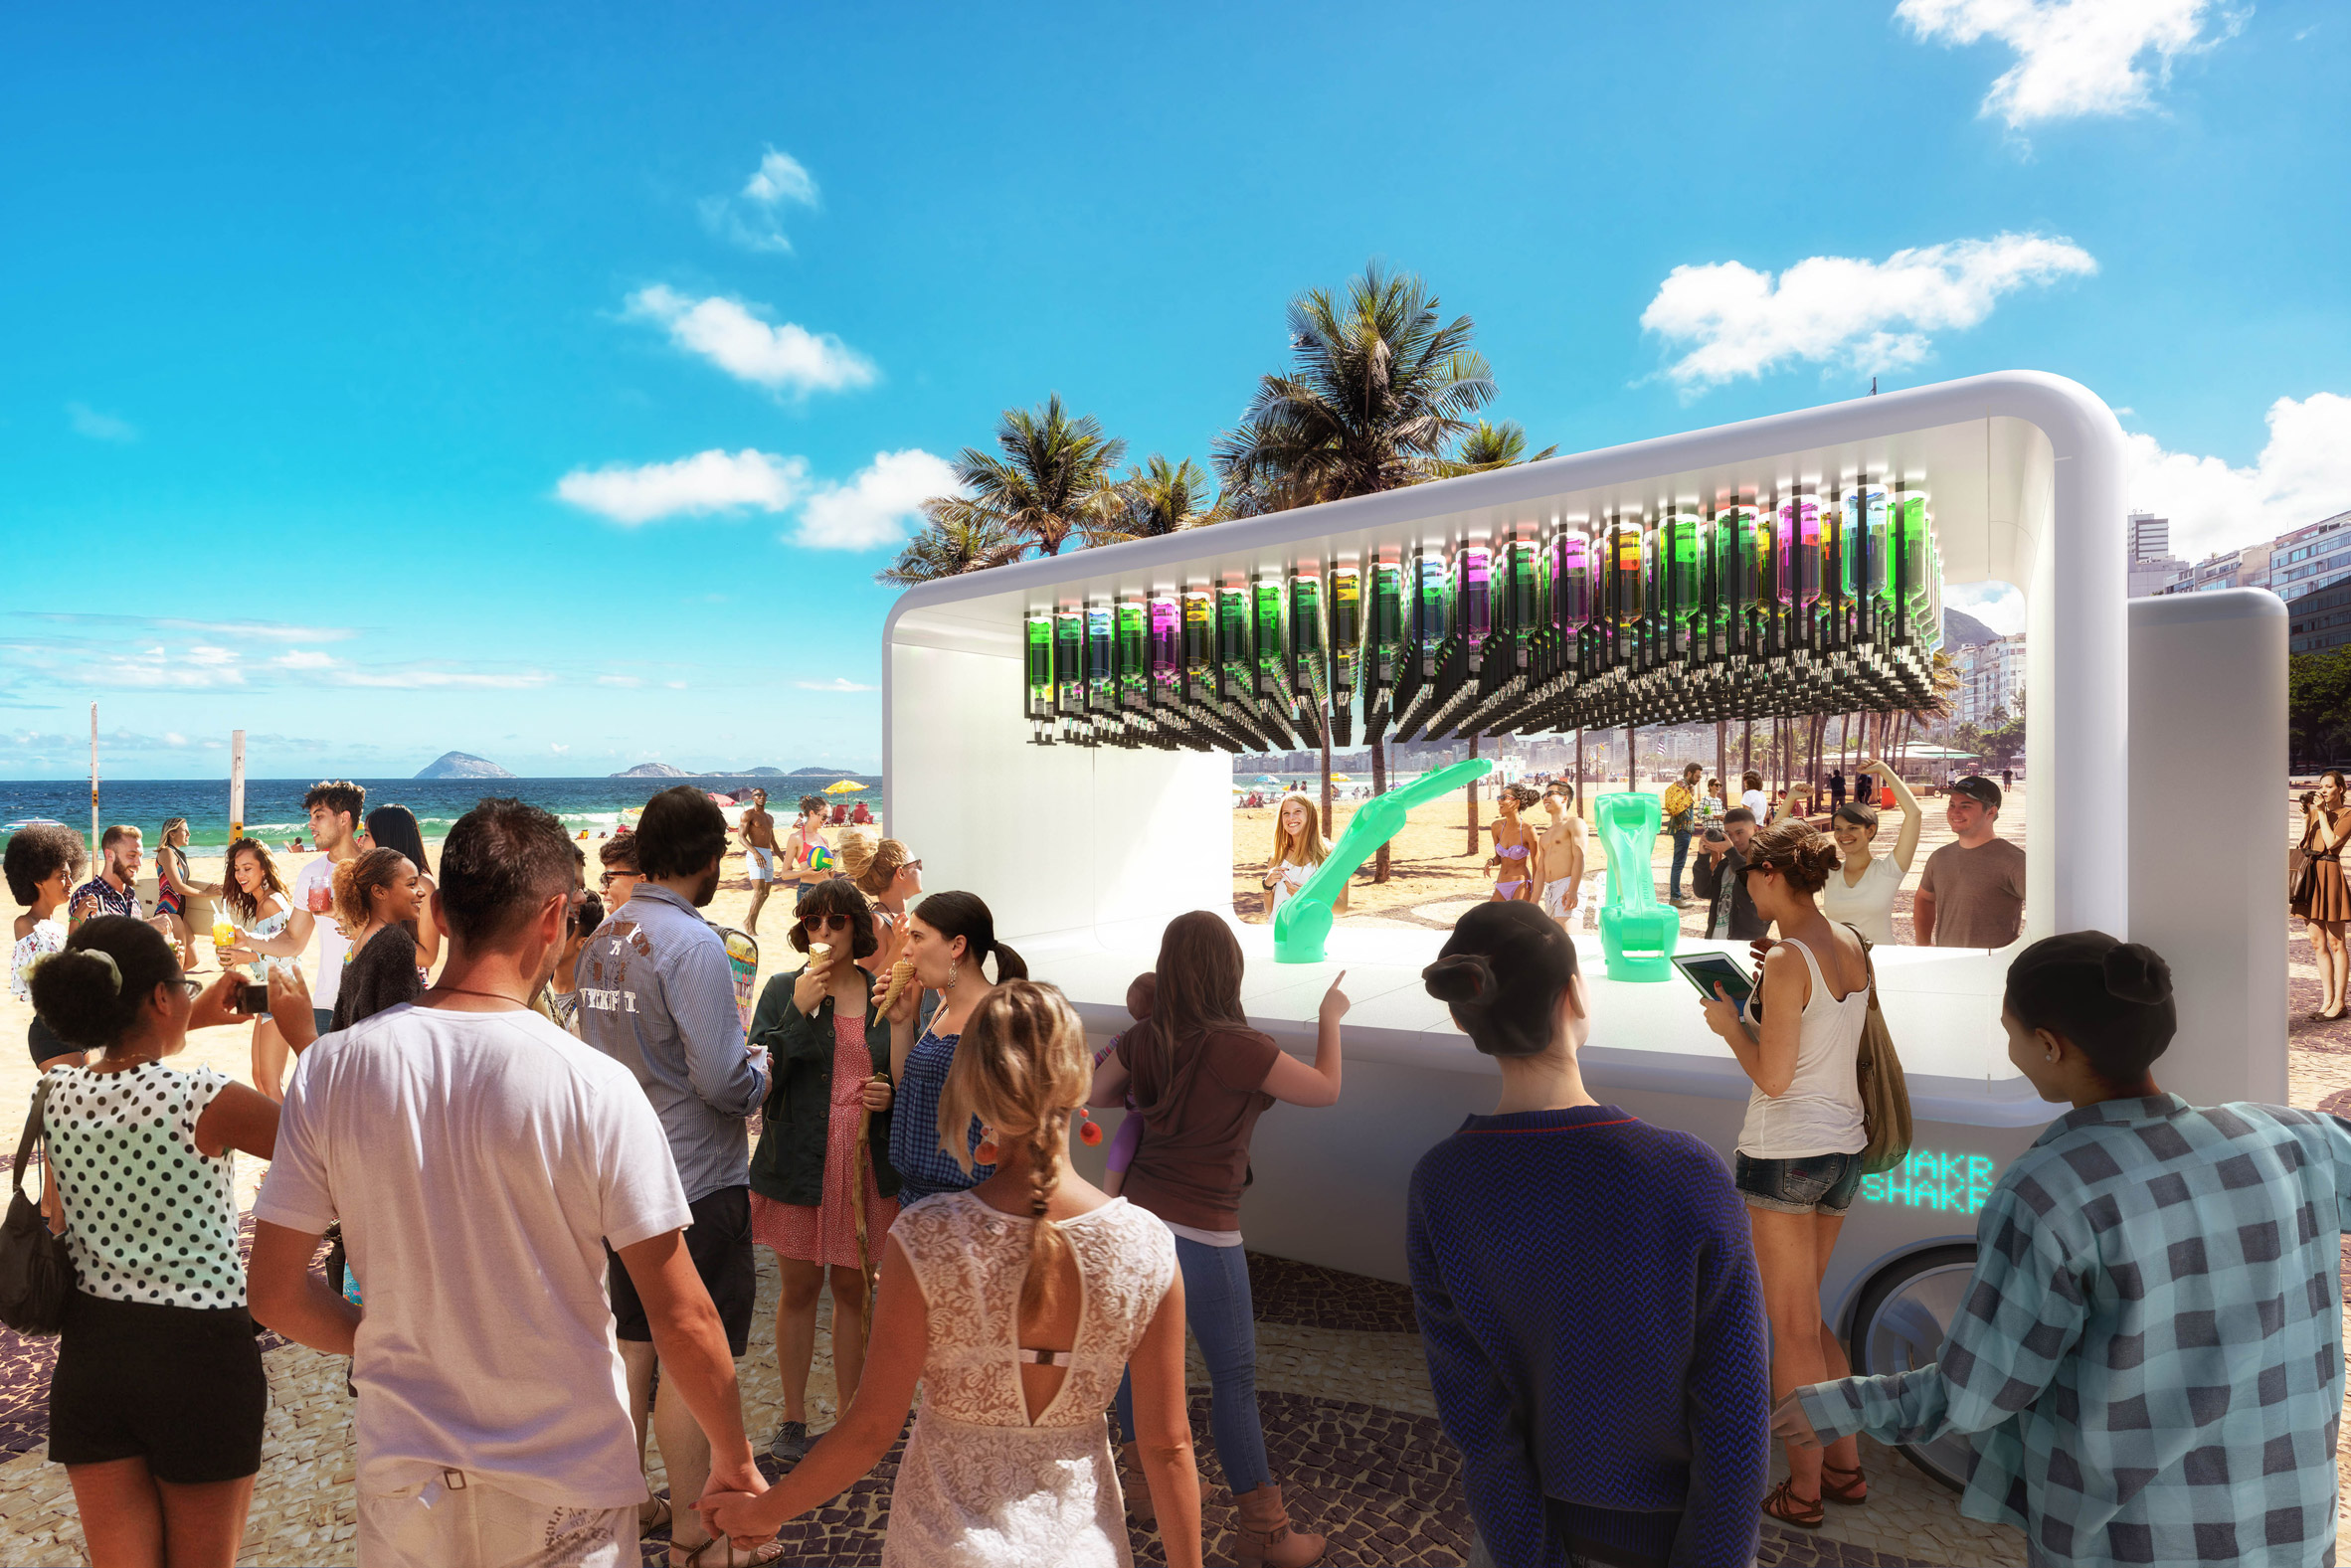 Carlo Ratti designs driverless bar called Guido